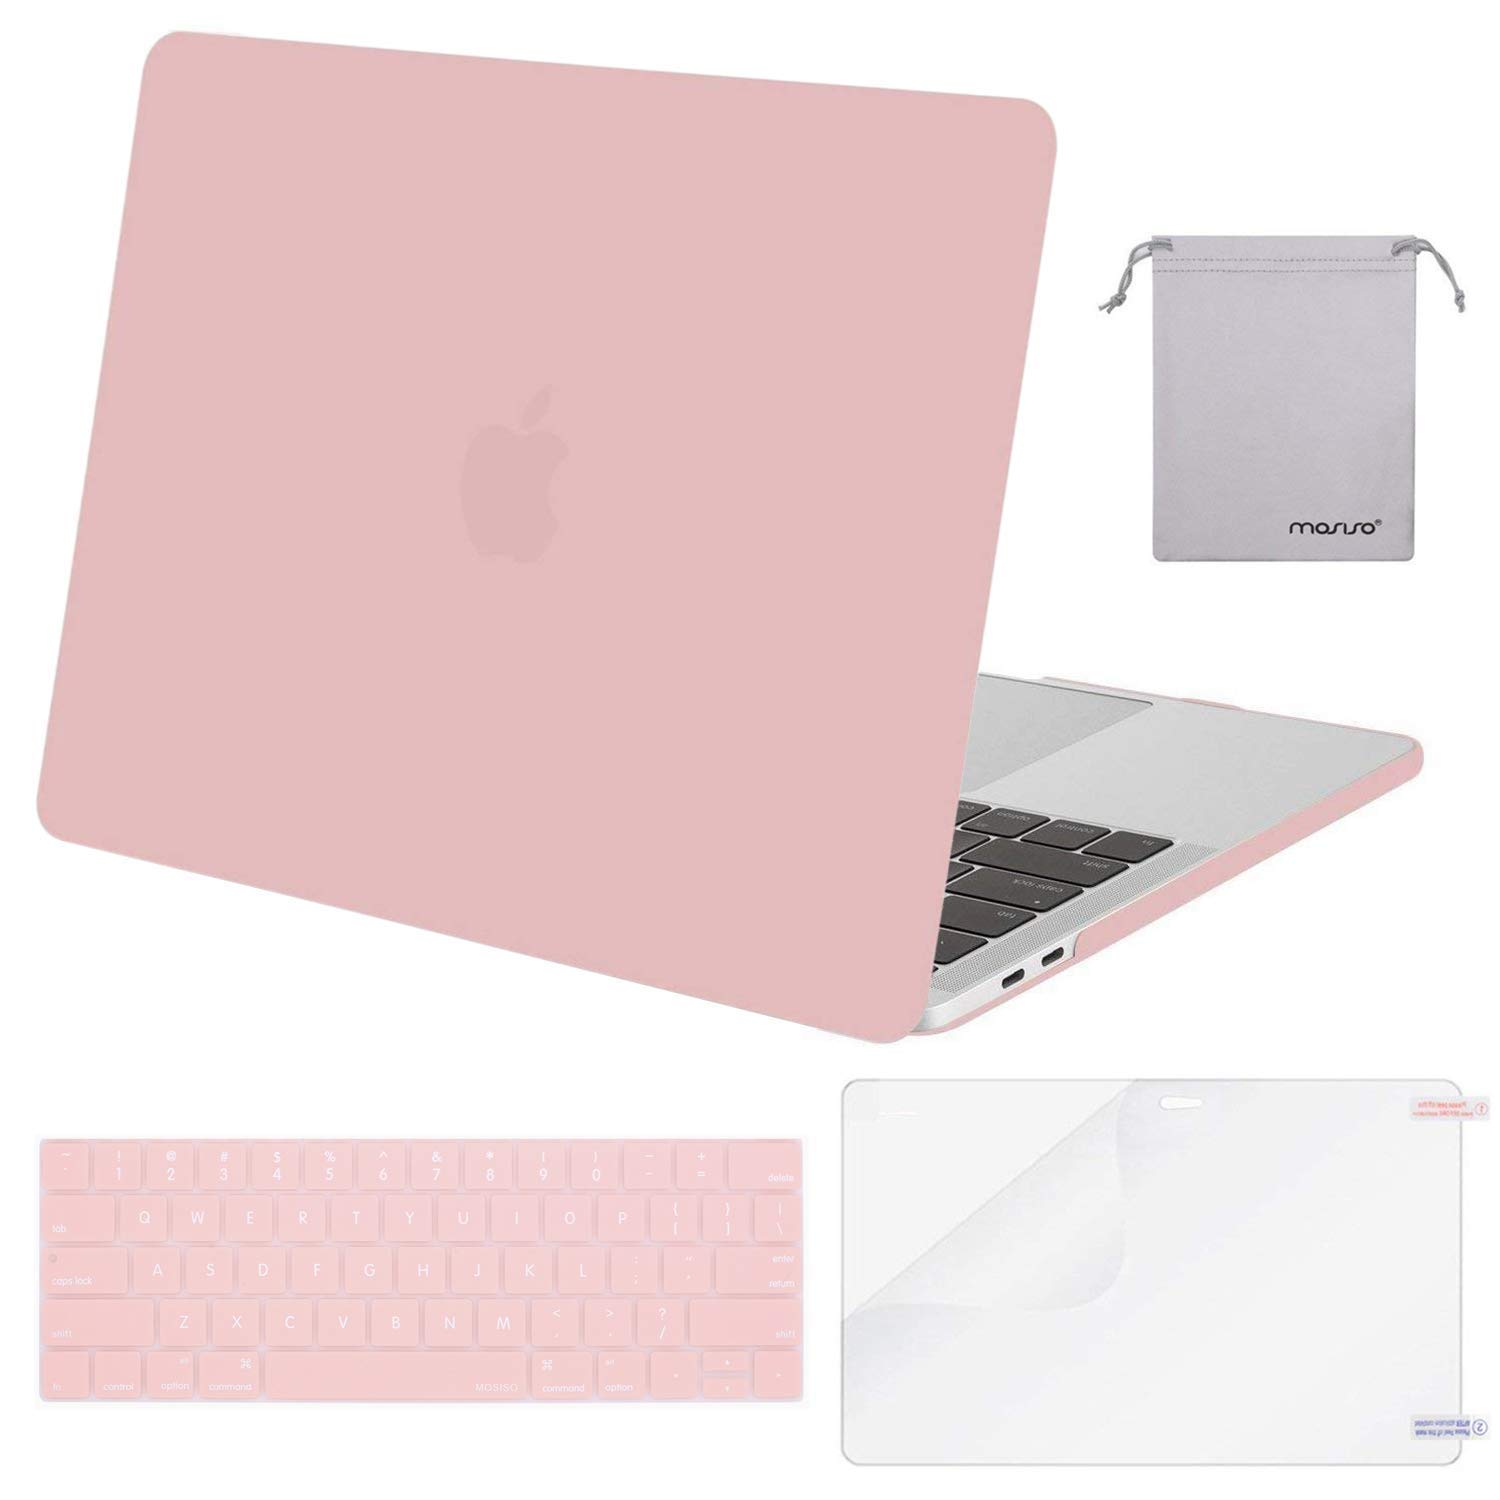 Plastic Hard Shell /& Keyboard Cover /& Screen Protector /& Storage Bag Compatible Newest MacBook Pro 13 Inch Mosiso MacBook Pro 13 Case 2019 2018 2017 2016 Release A1989 A1706 A1708 Navy Blue